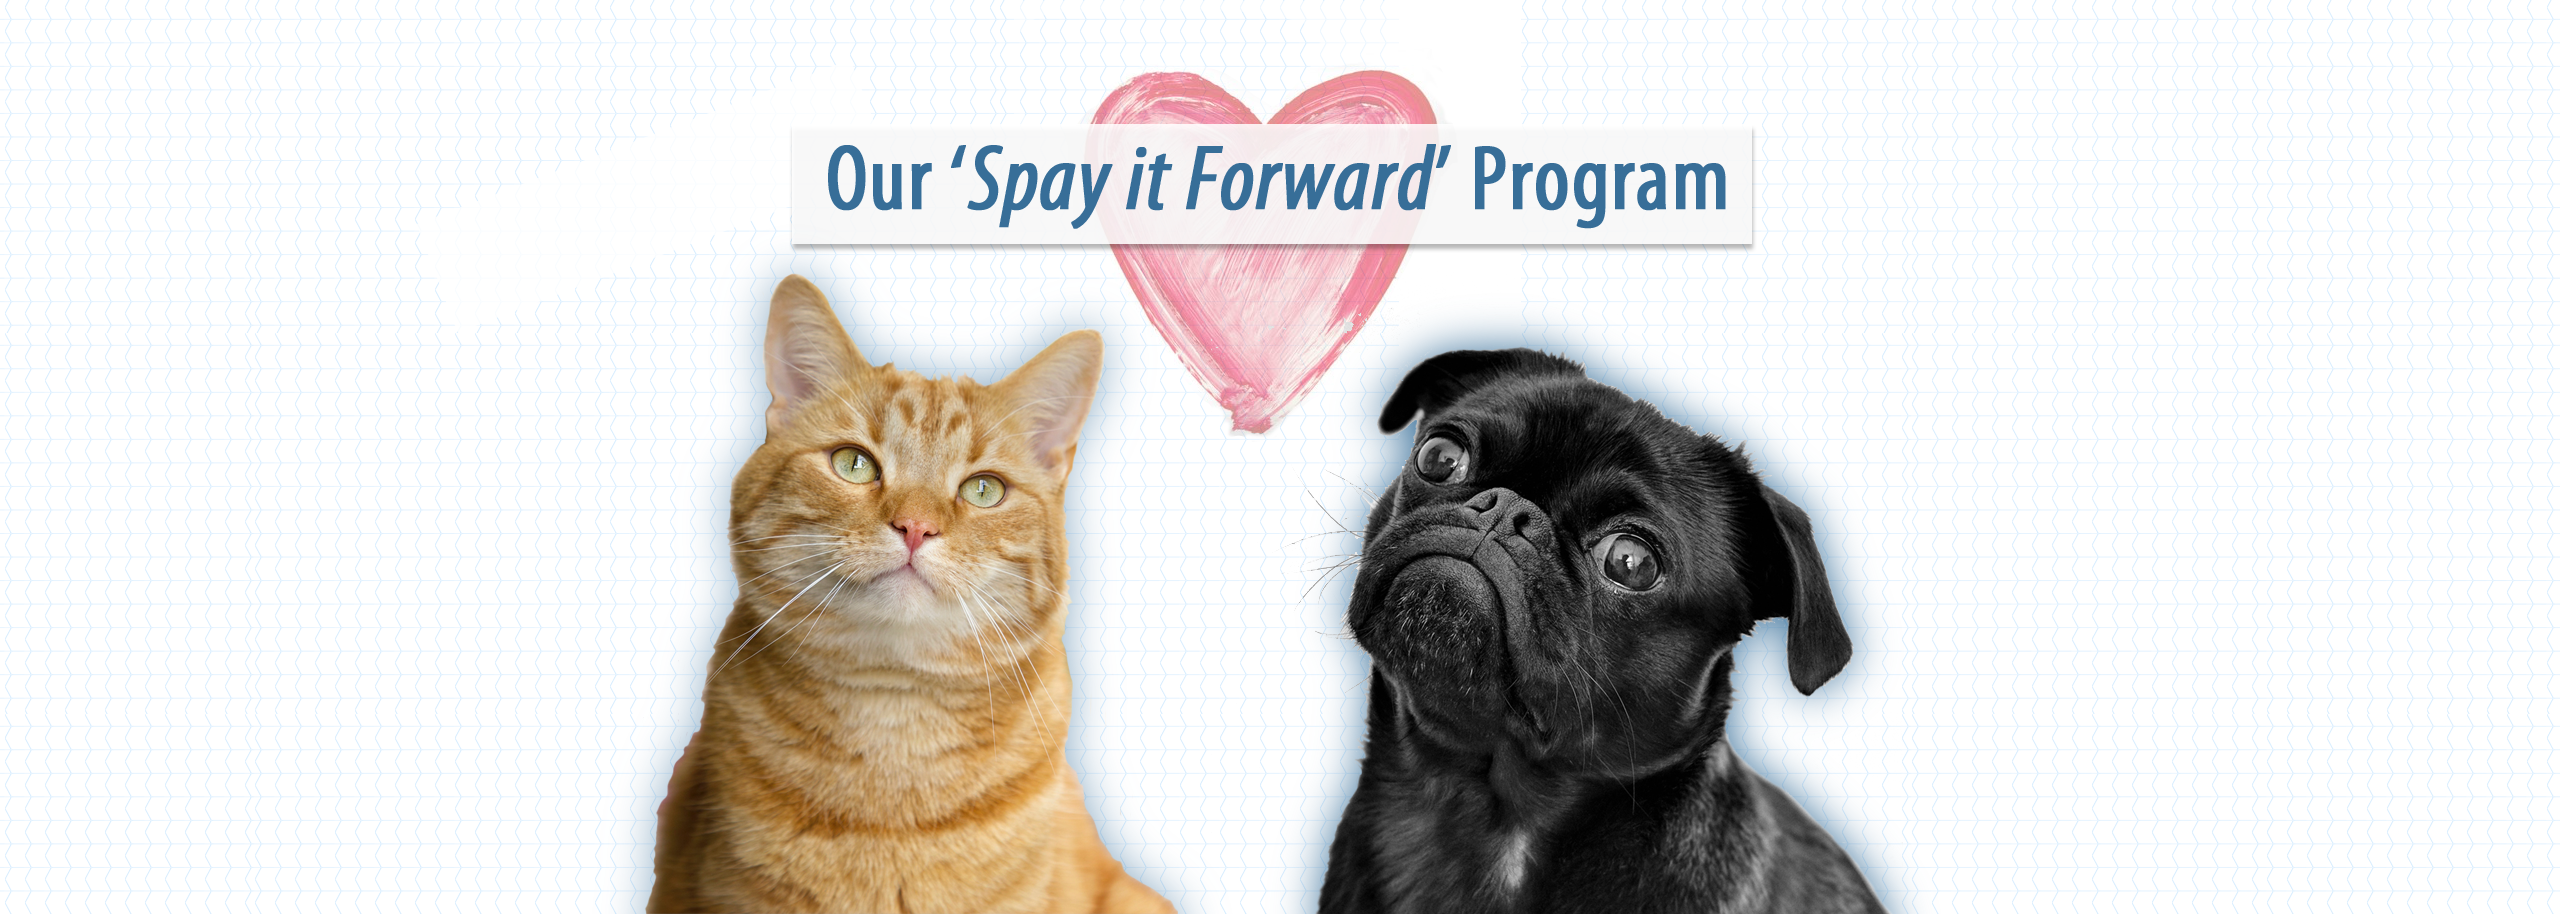 Spay it Forward at Animal Care Sanctuary